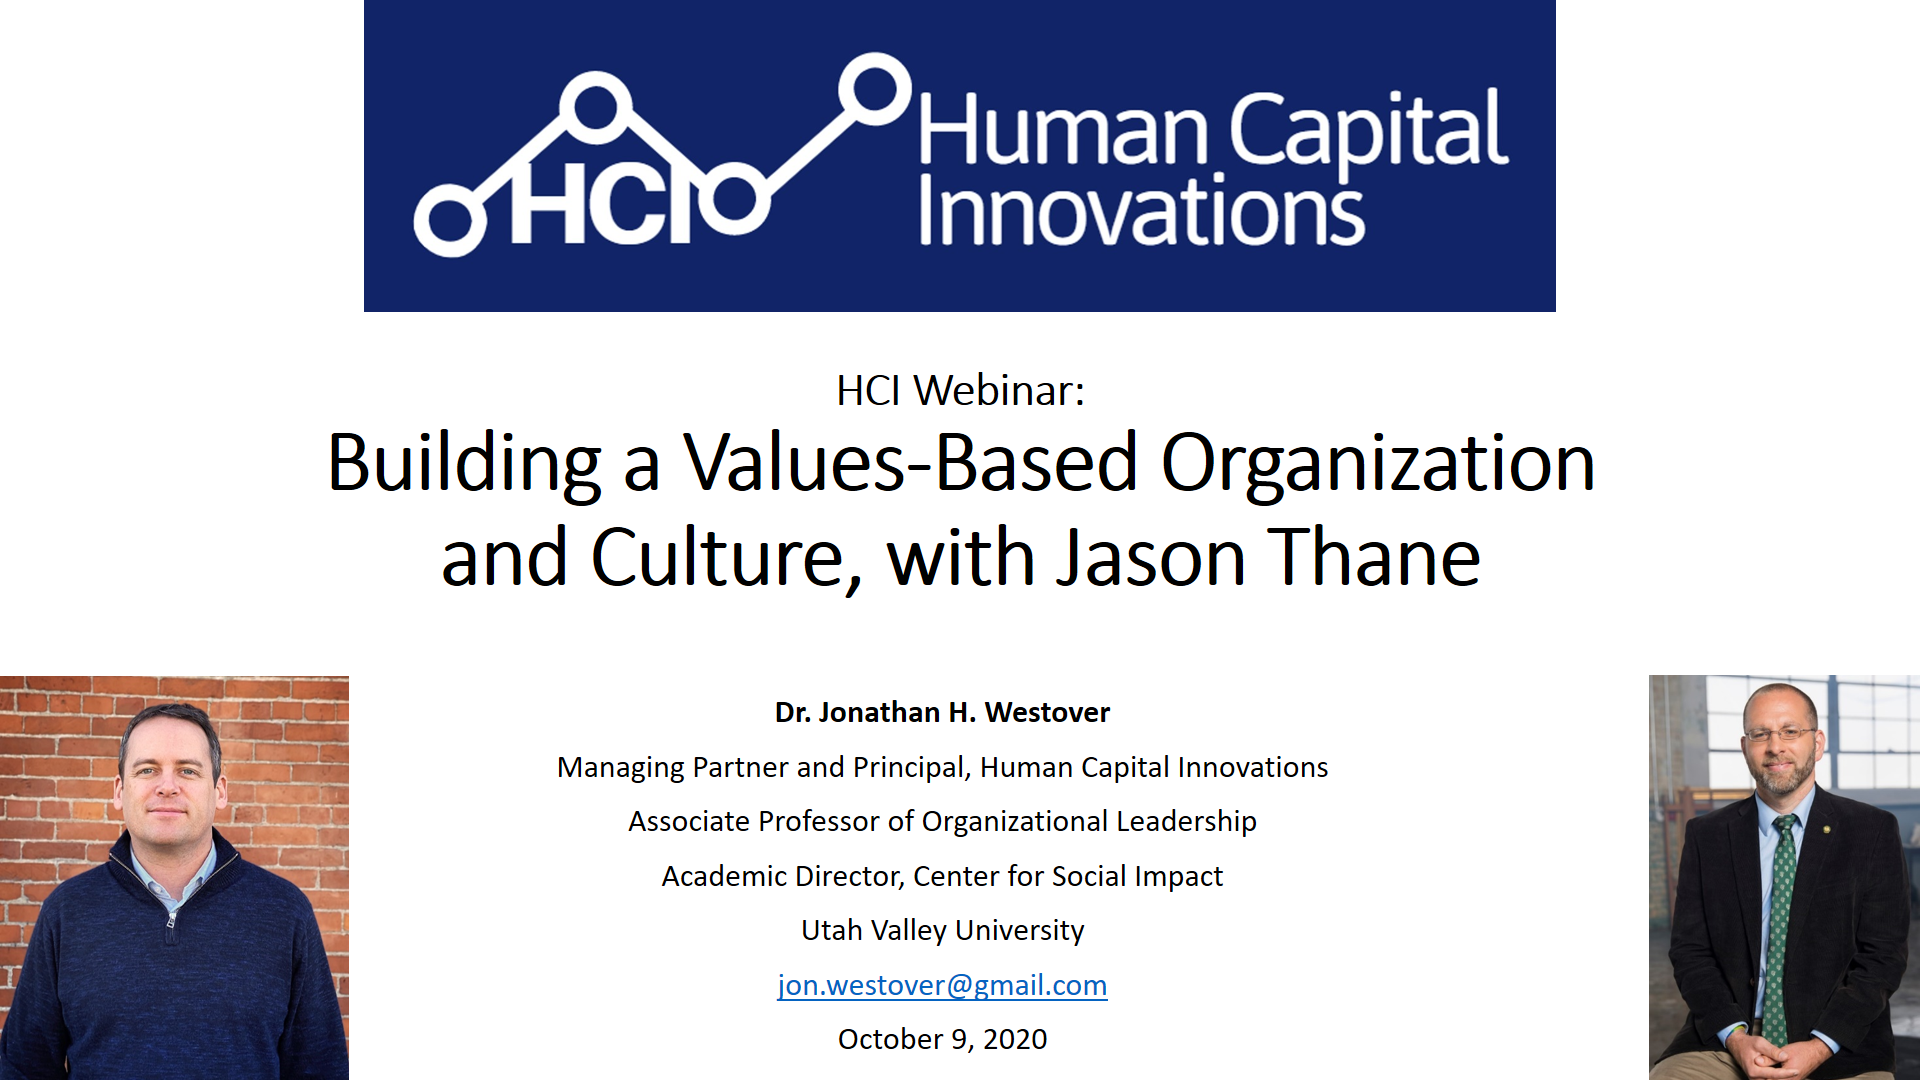 Building a Values-Based Organization and Culture